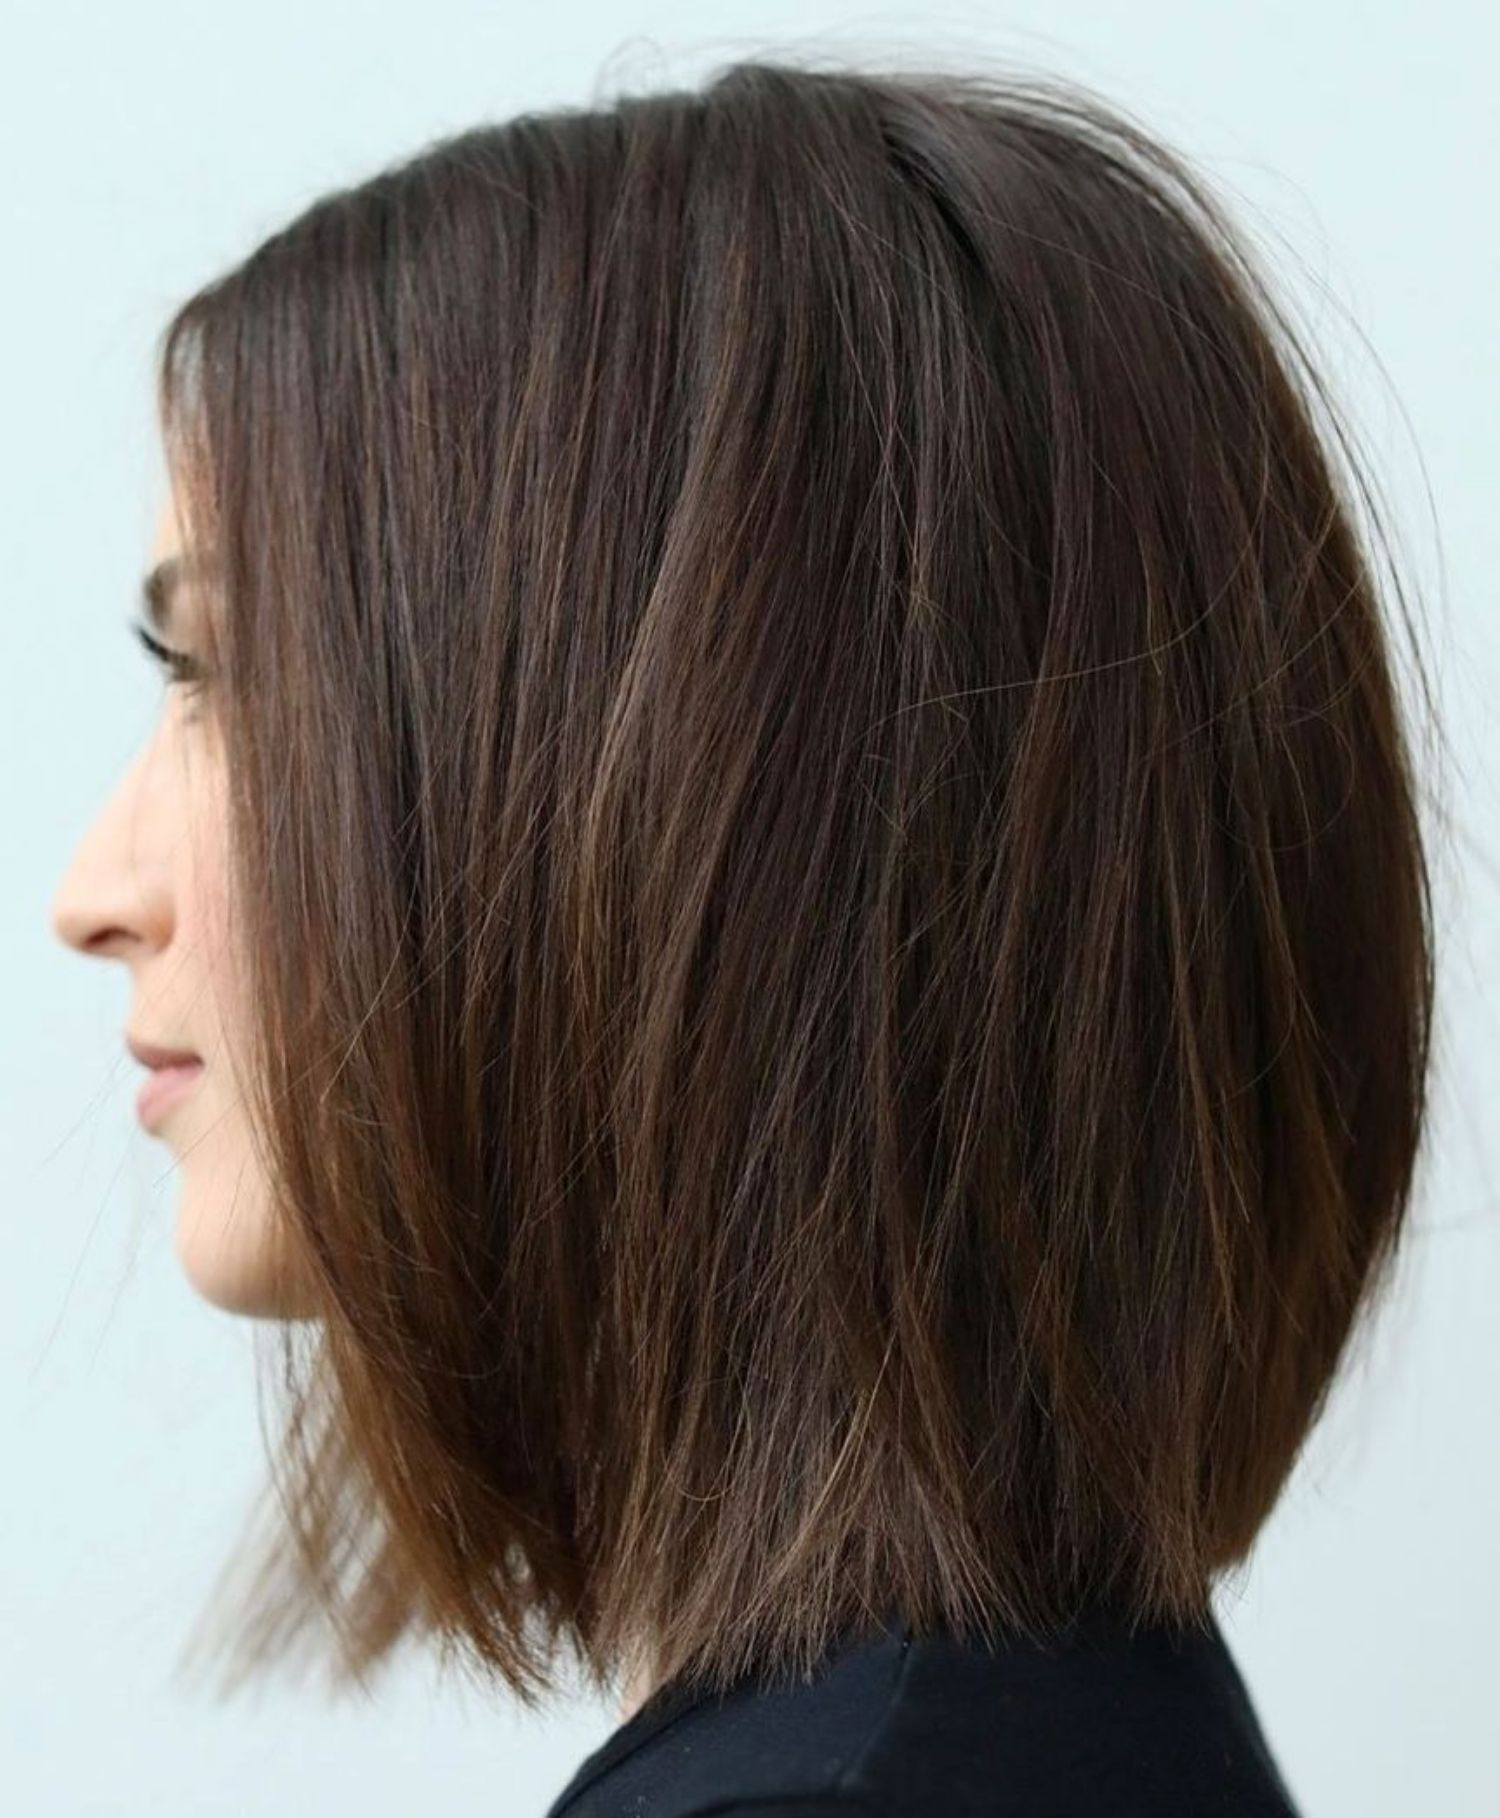 60 Fun And Flattering Medium Hairstyles For Women One Length Bob With Razored Ends Bobhairstylesmedium F In 2020 One Length Hair Medium Hair Styles Hair Styles